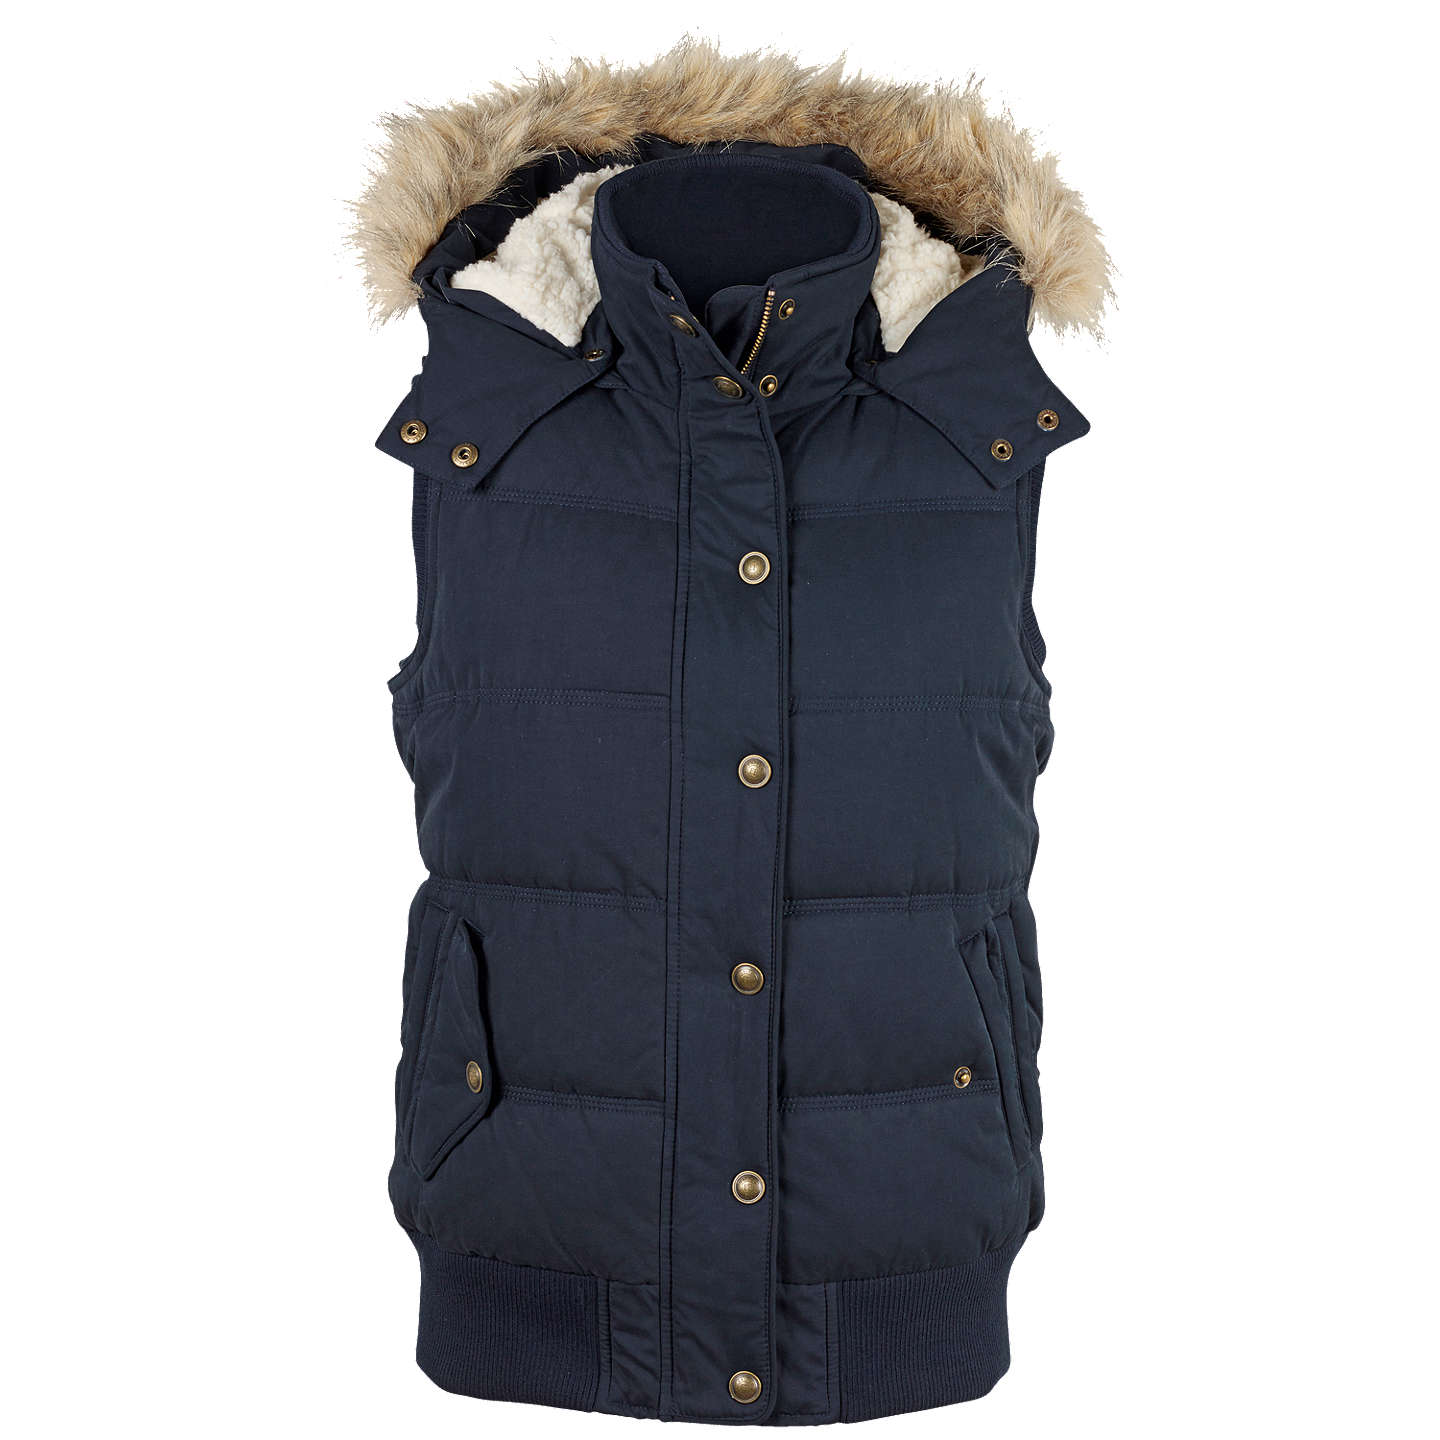 Discount Extremely High Quality For Sale Womens Heritage Outdoot Gilet Fat Face ZLFR5ls